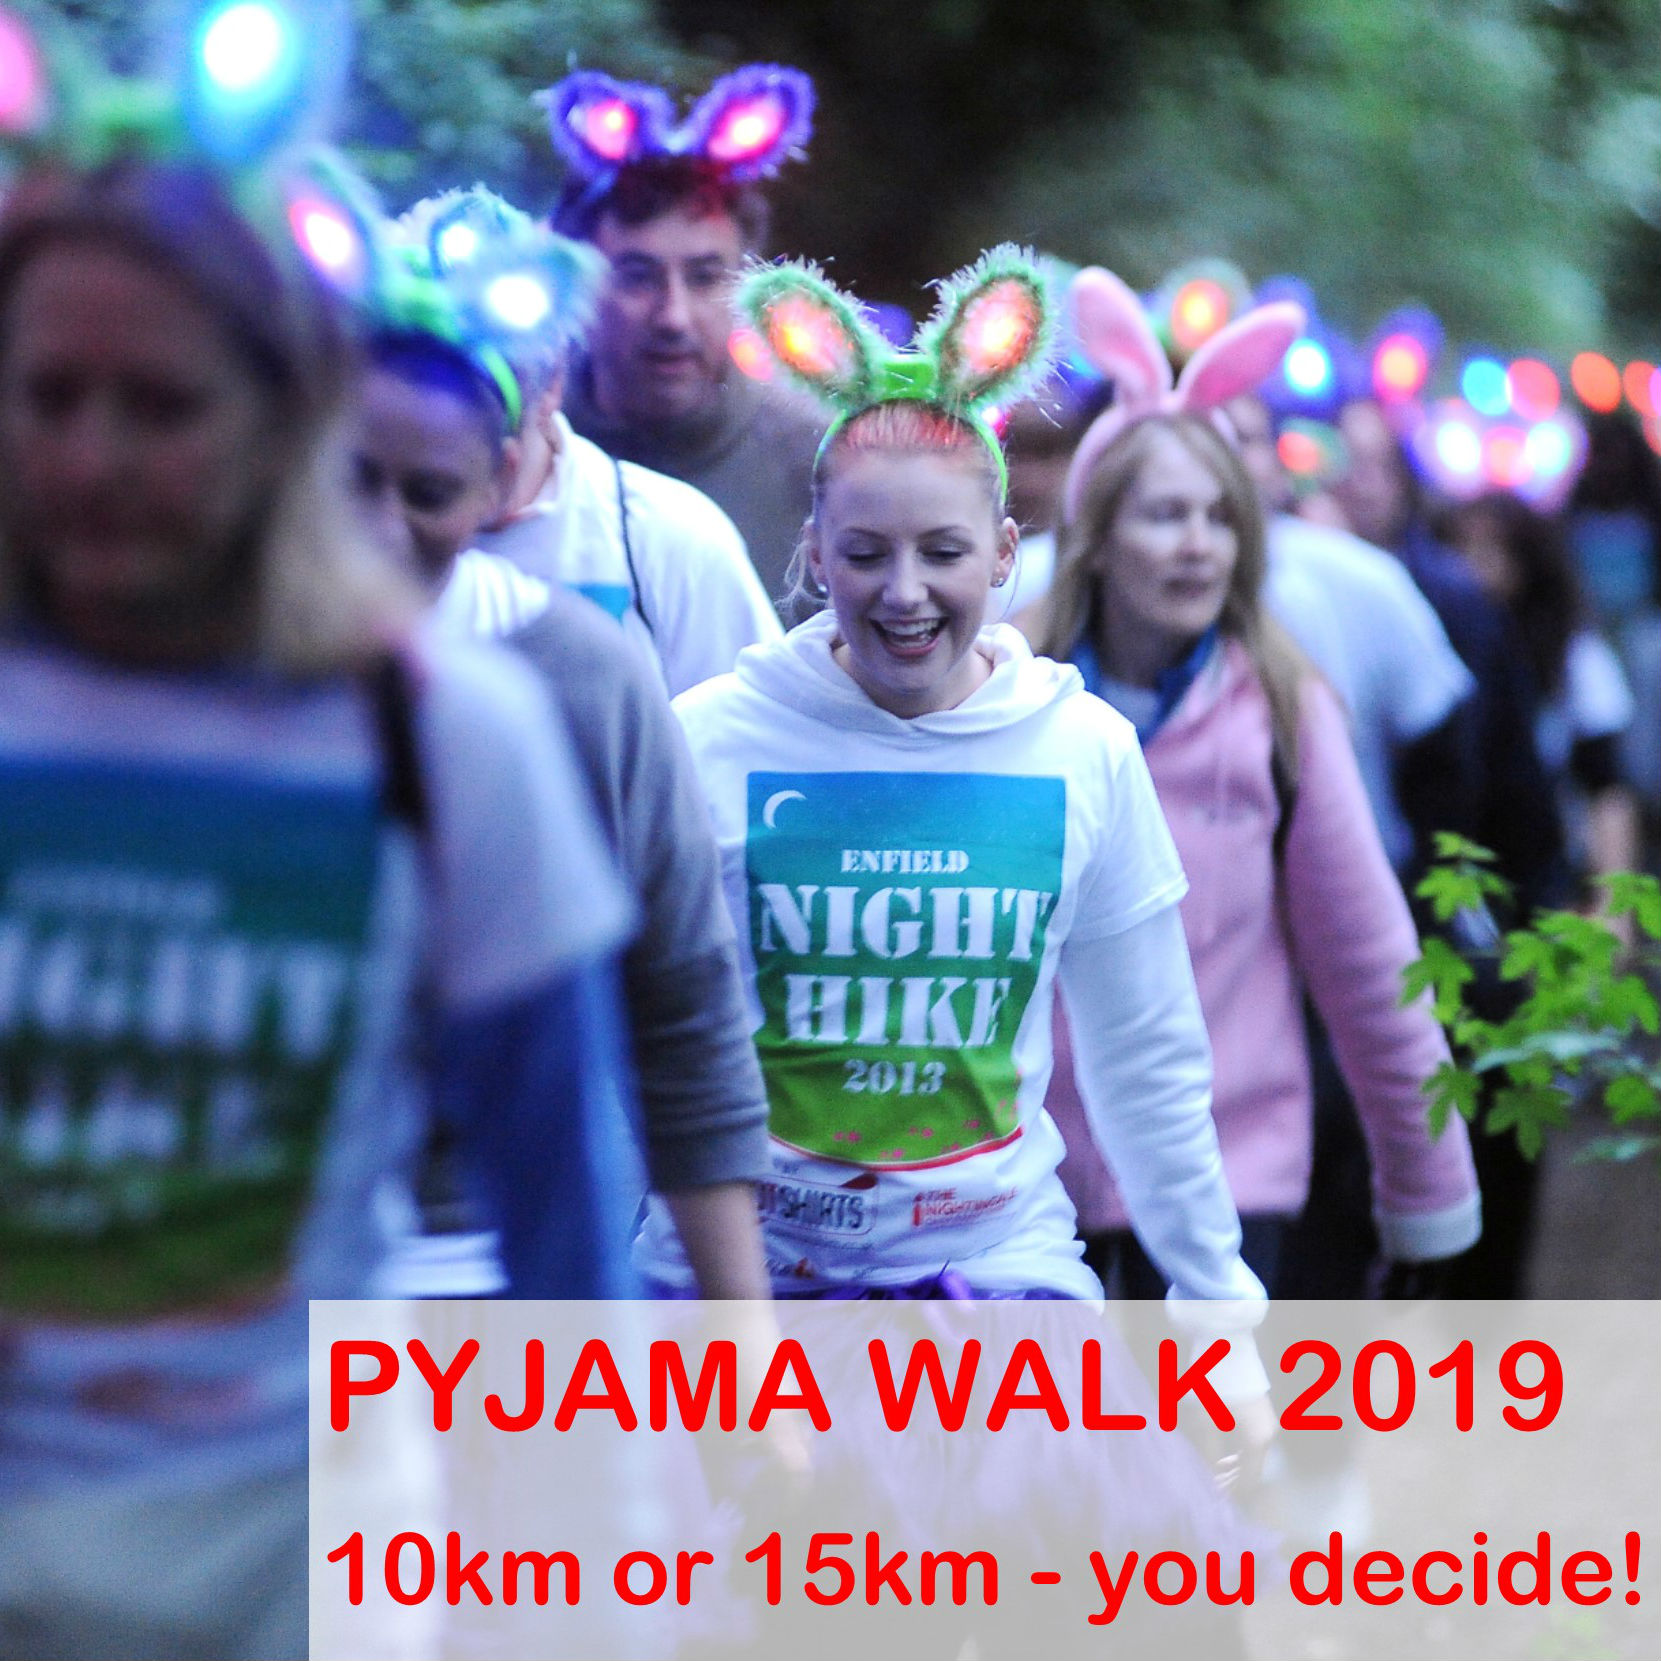 Nightingale Pyjama Walk